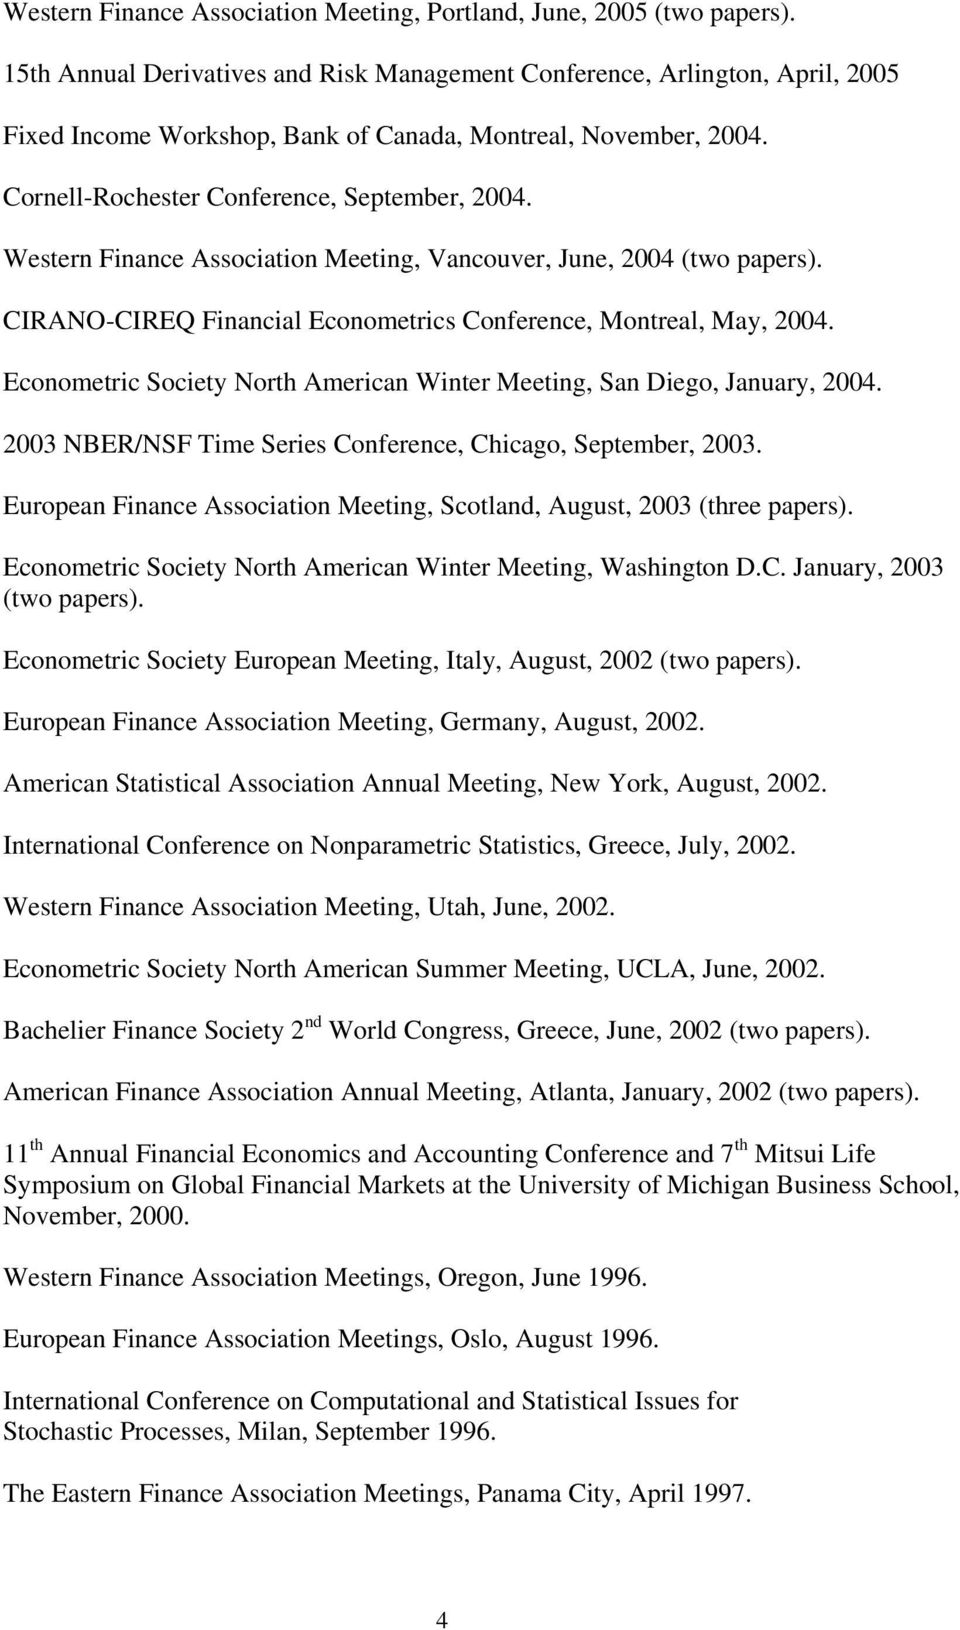 Western Finance Association Meeting, Vancouver, June, 2004 (two papers). CIRANO-CIREQ Financial Econometrics Conference, Montreal, May, 2004.